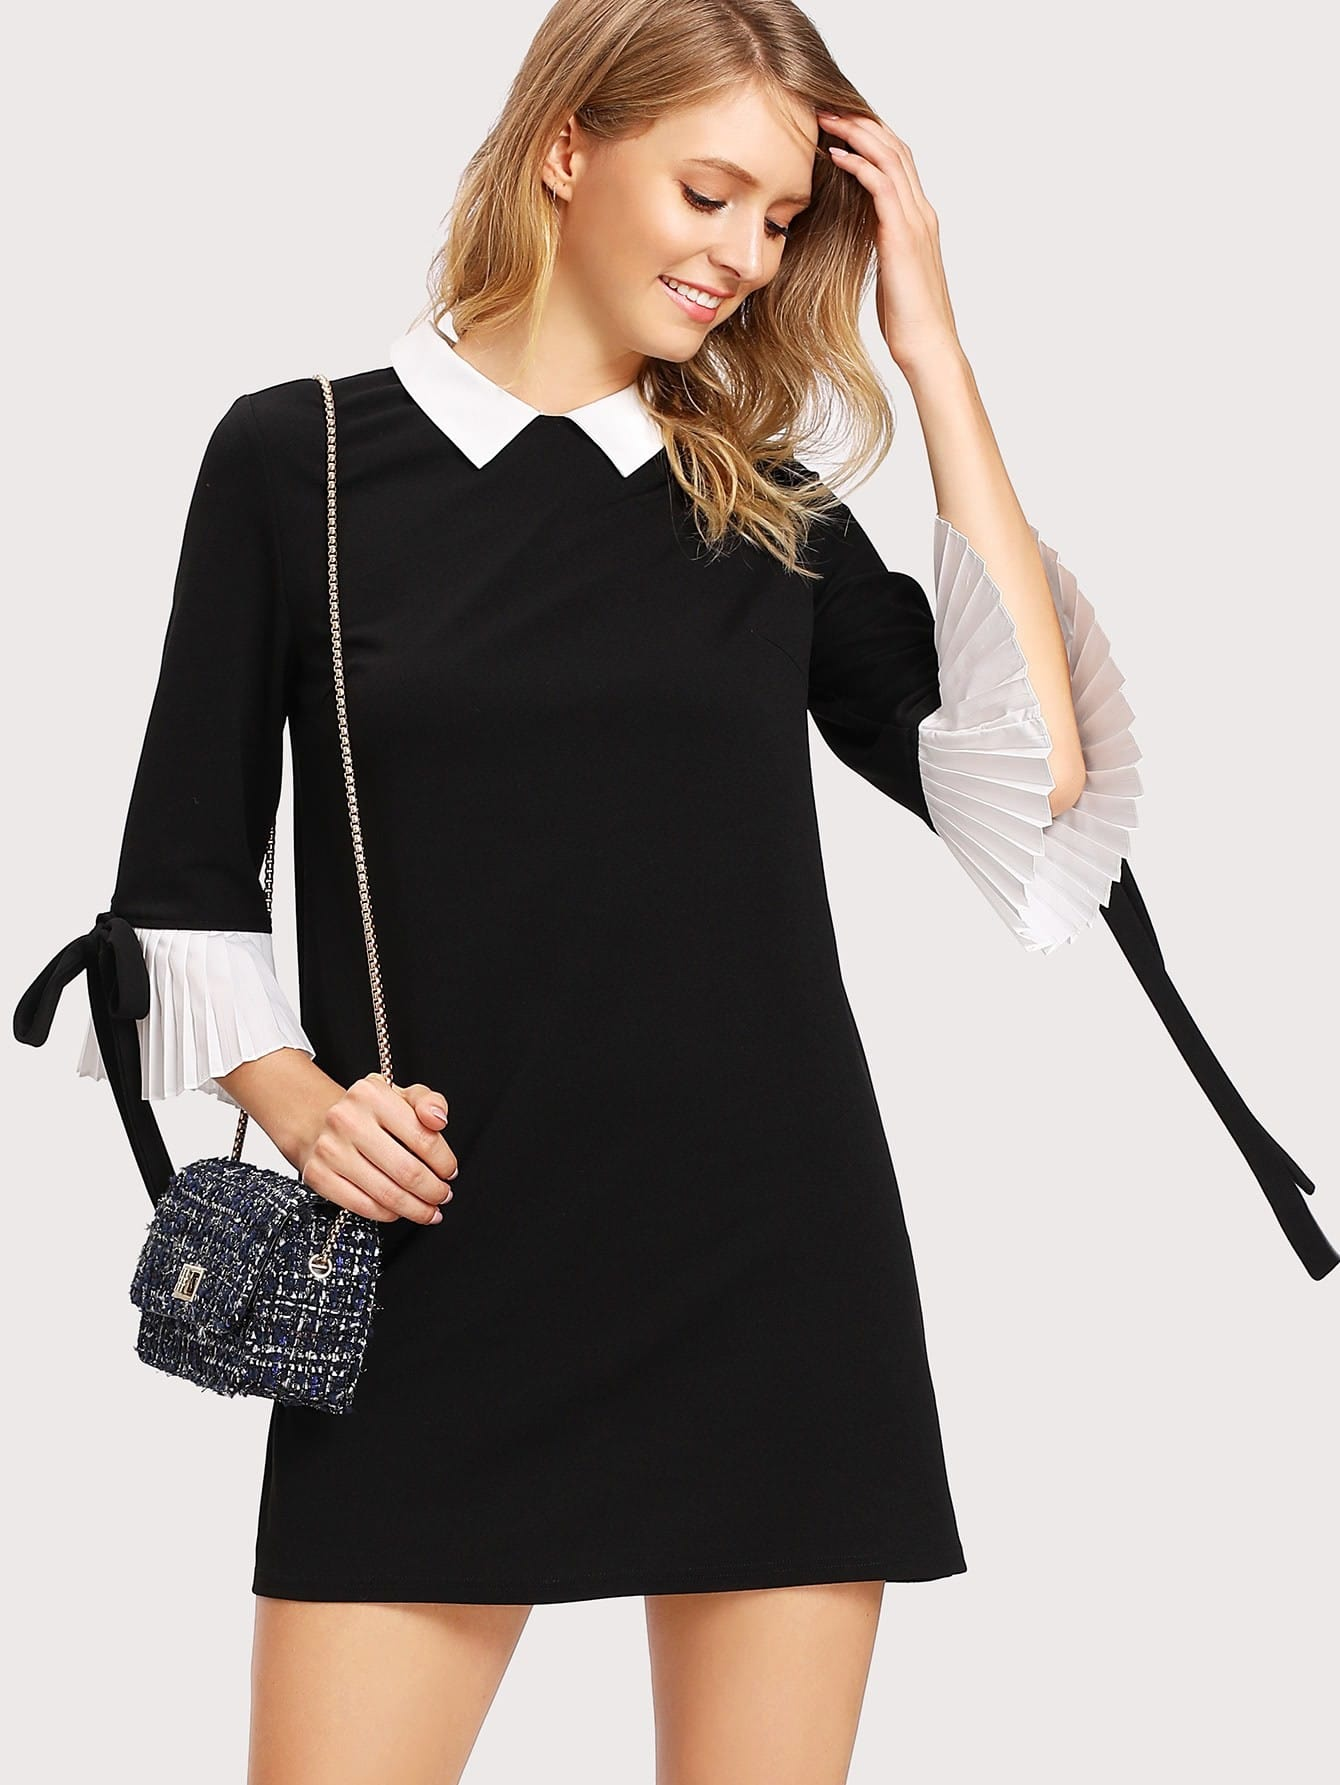 Contrast Collar And Pleated Cuff Dress contrast collar lace applique pleated pinstripe dress